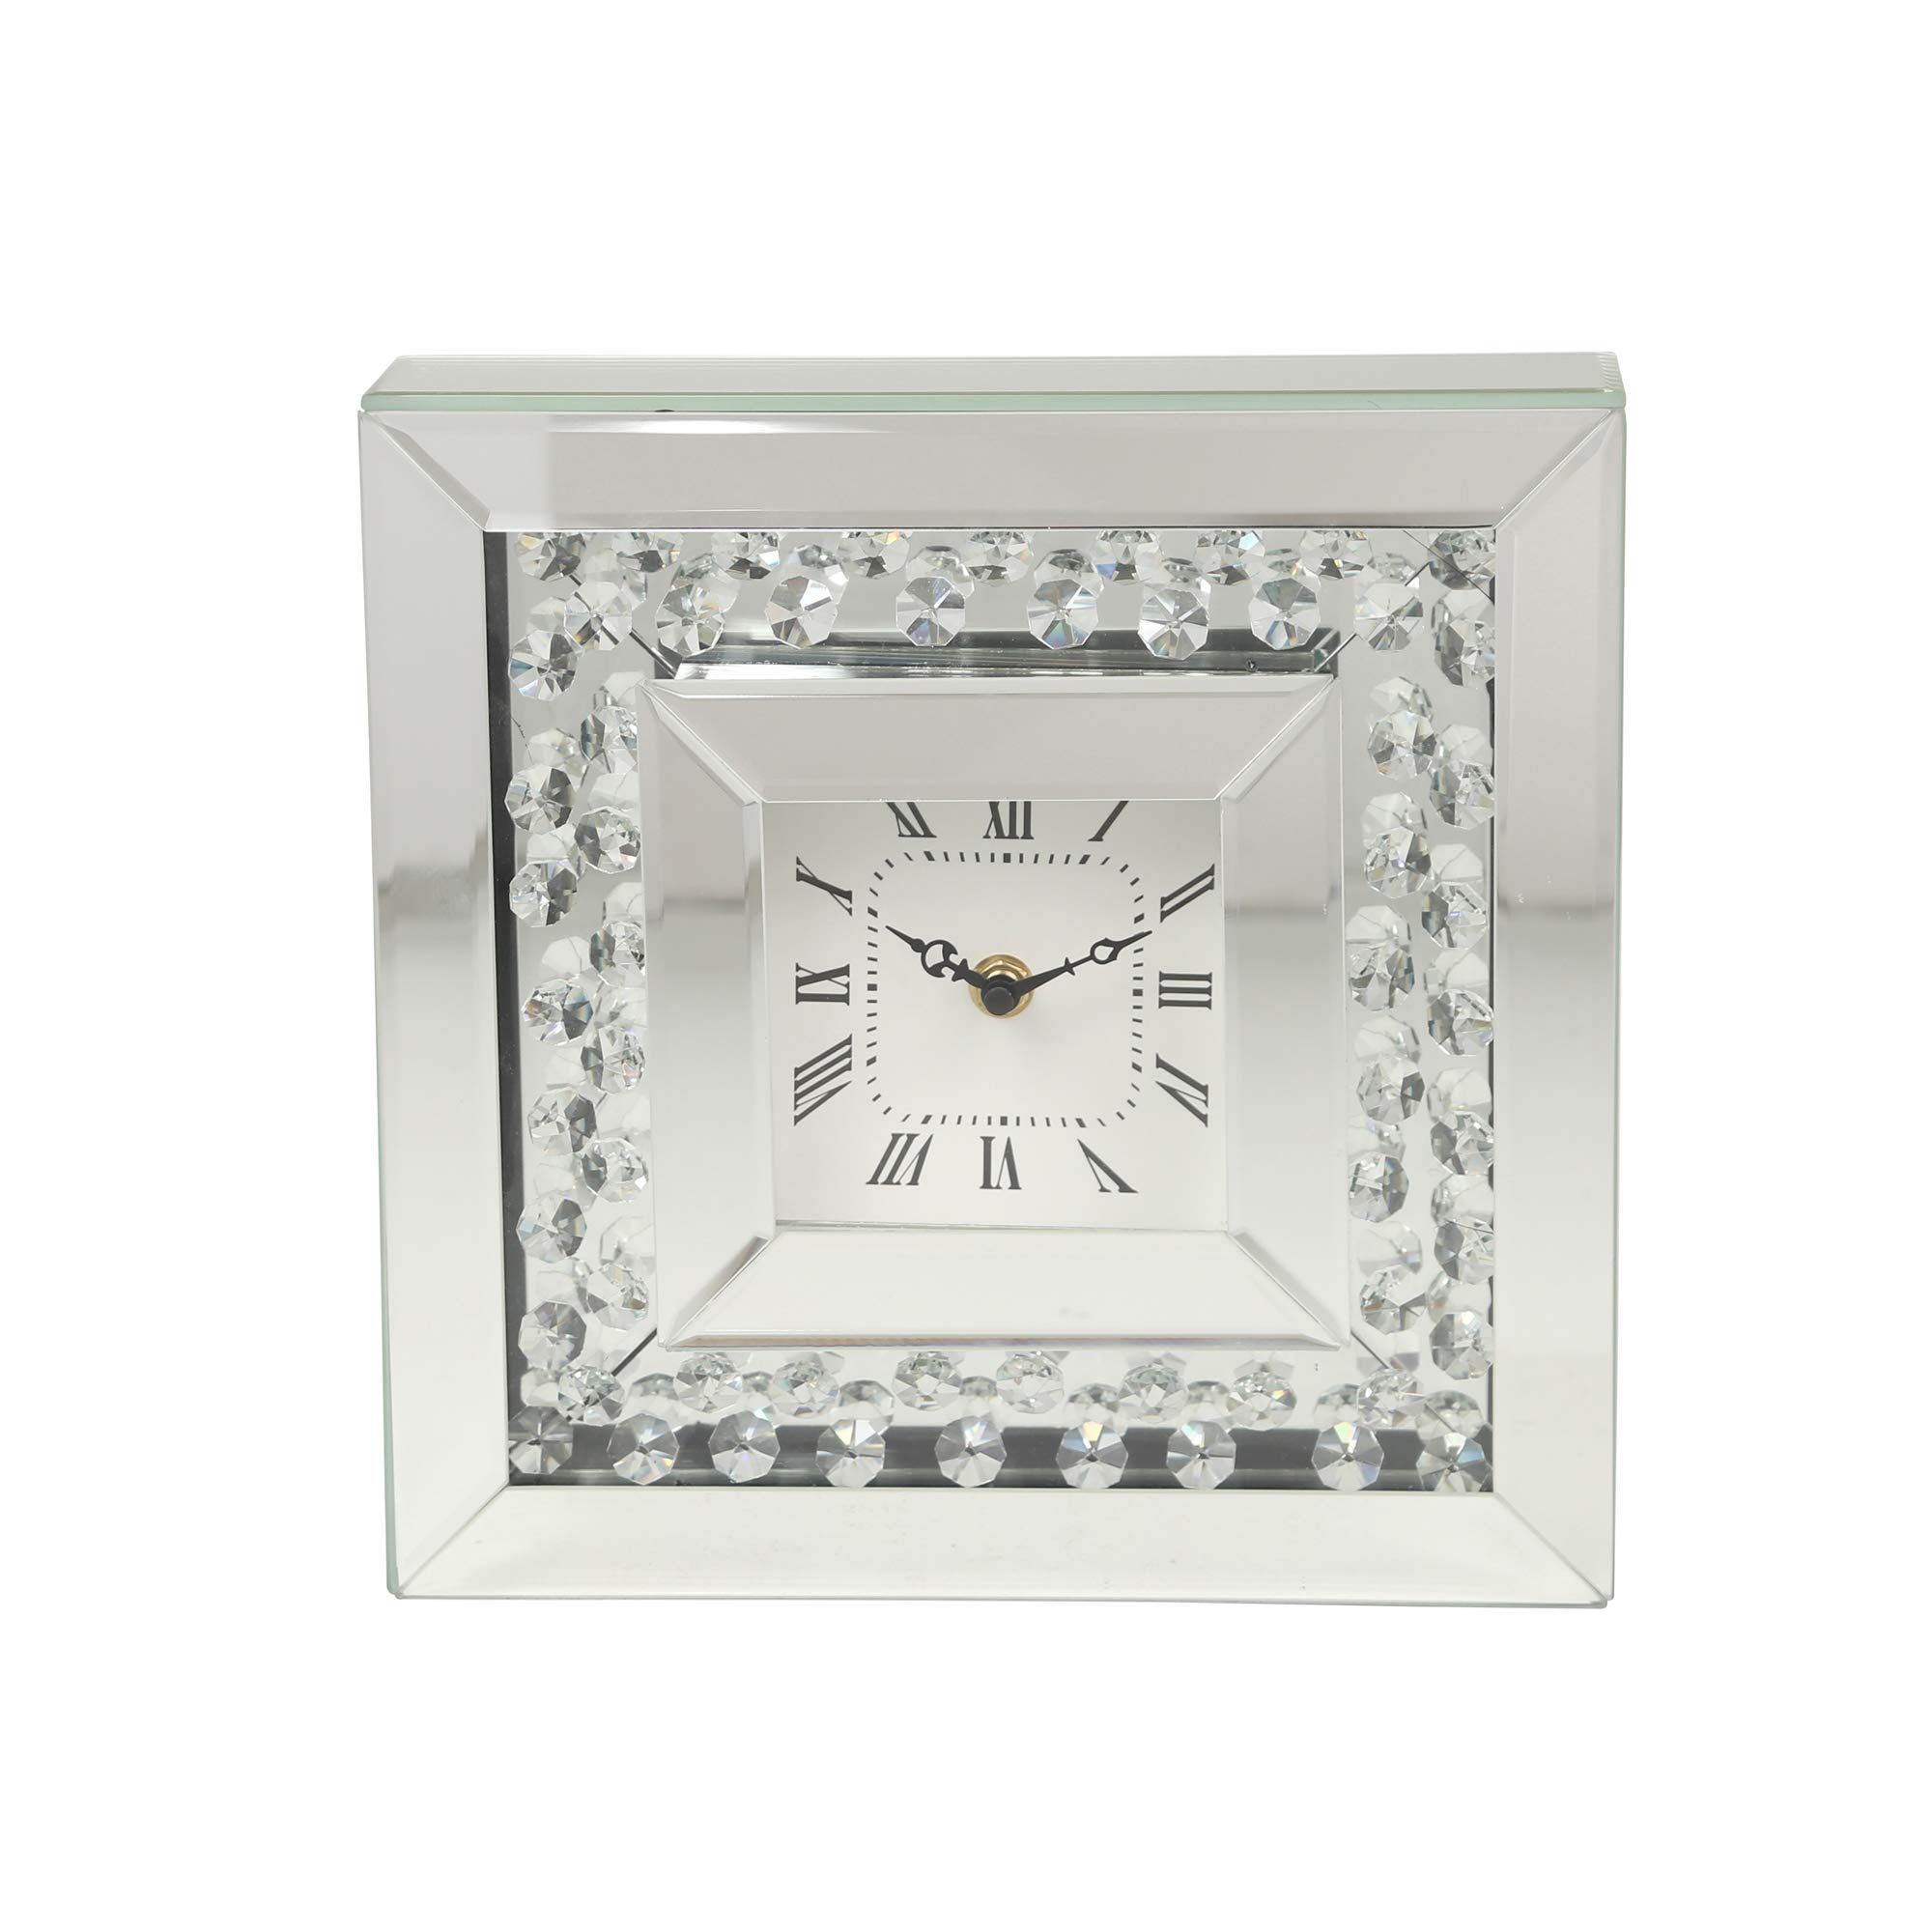 Sagebrook Home MDF Mirror Table Clock, 10 x 2.75 x 10, Silver